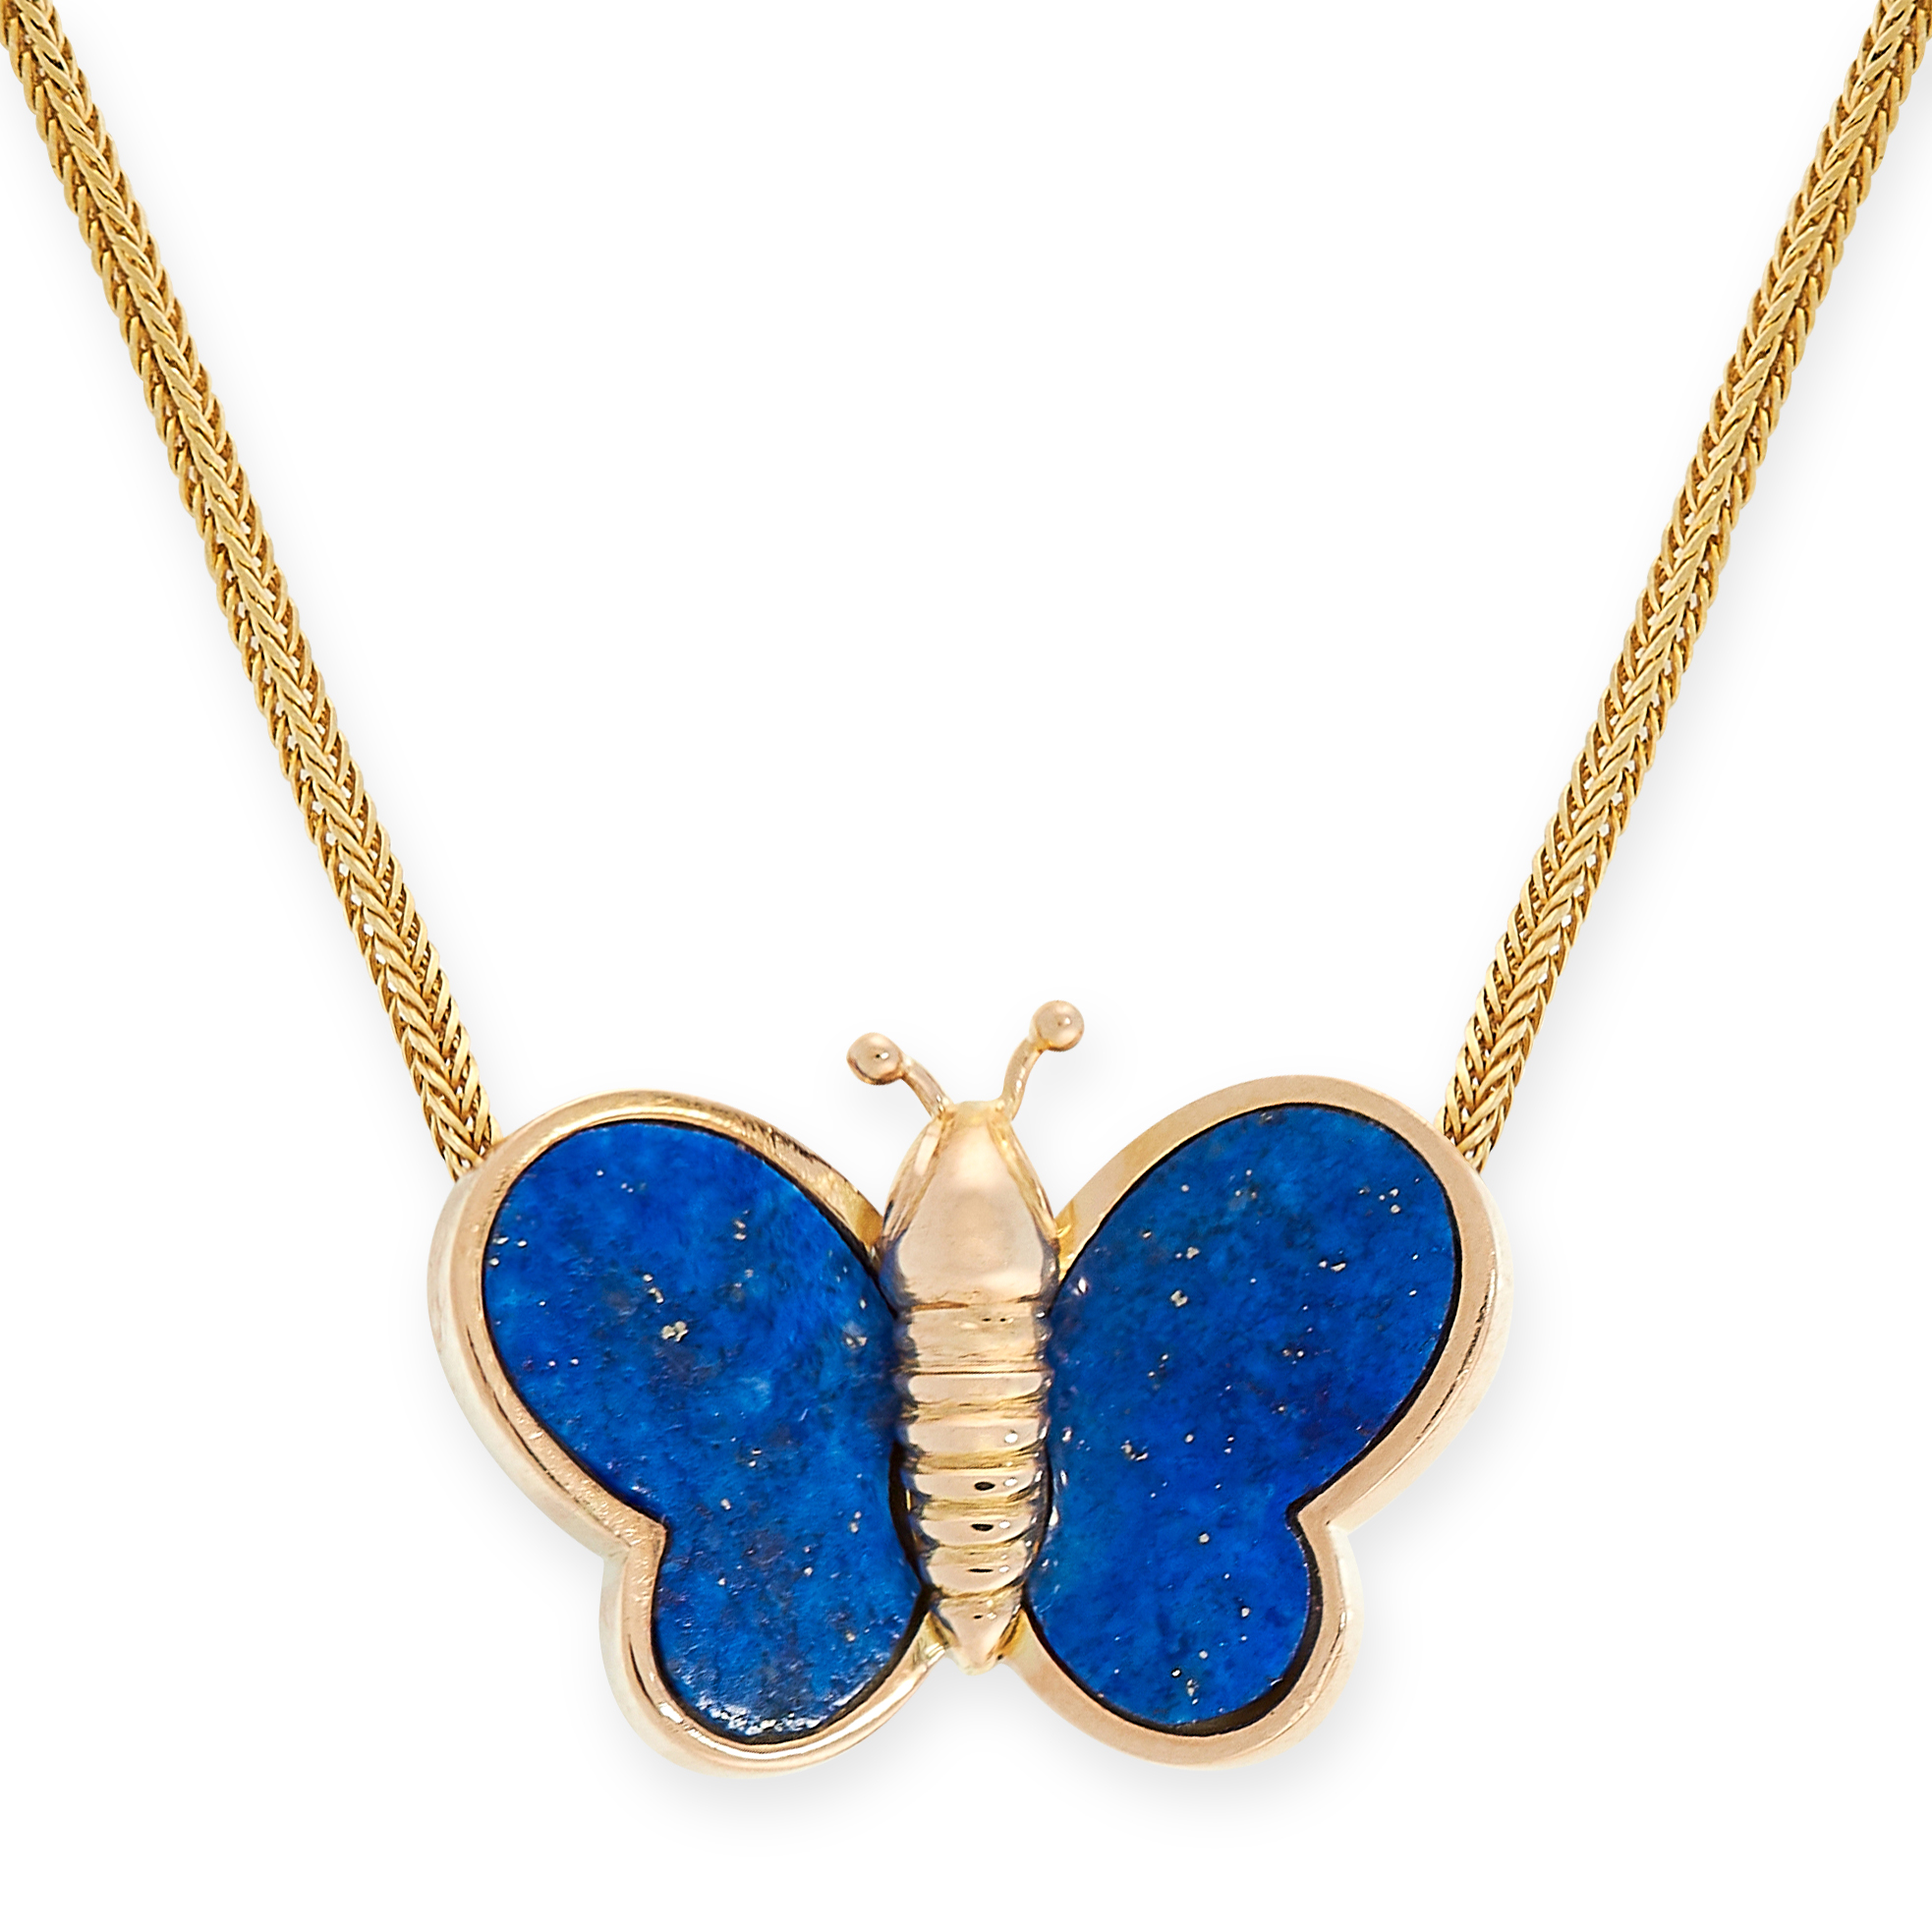 LAPIS LAZULI BUTTERFLY PENDANT NECKLACE in the form of a butterfly with lapis lazuli set wings,